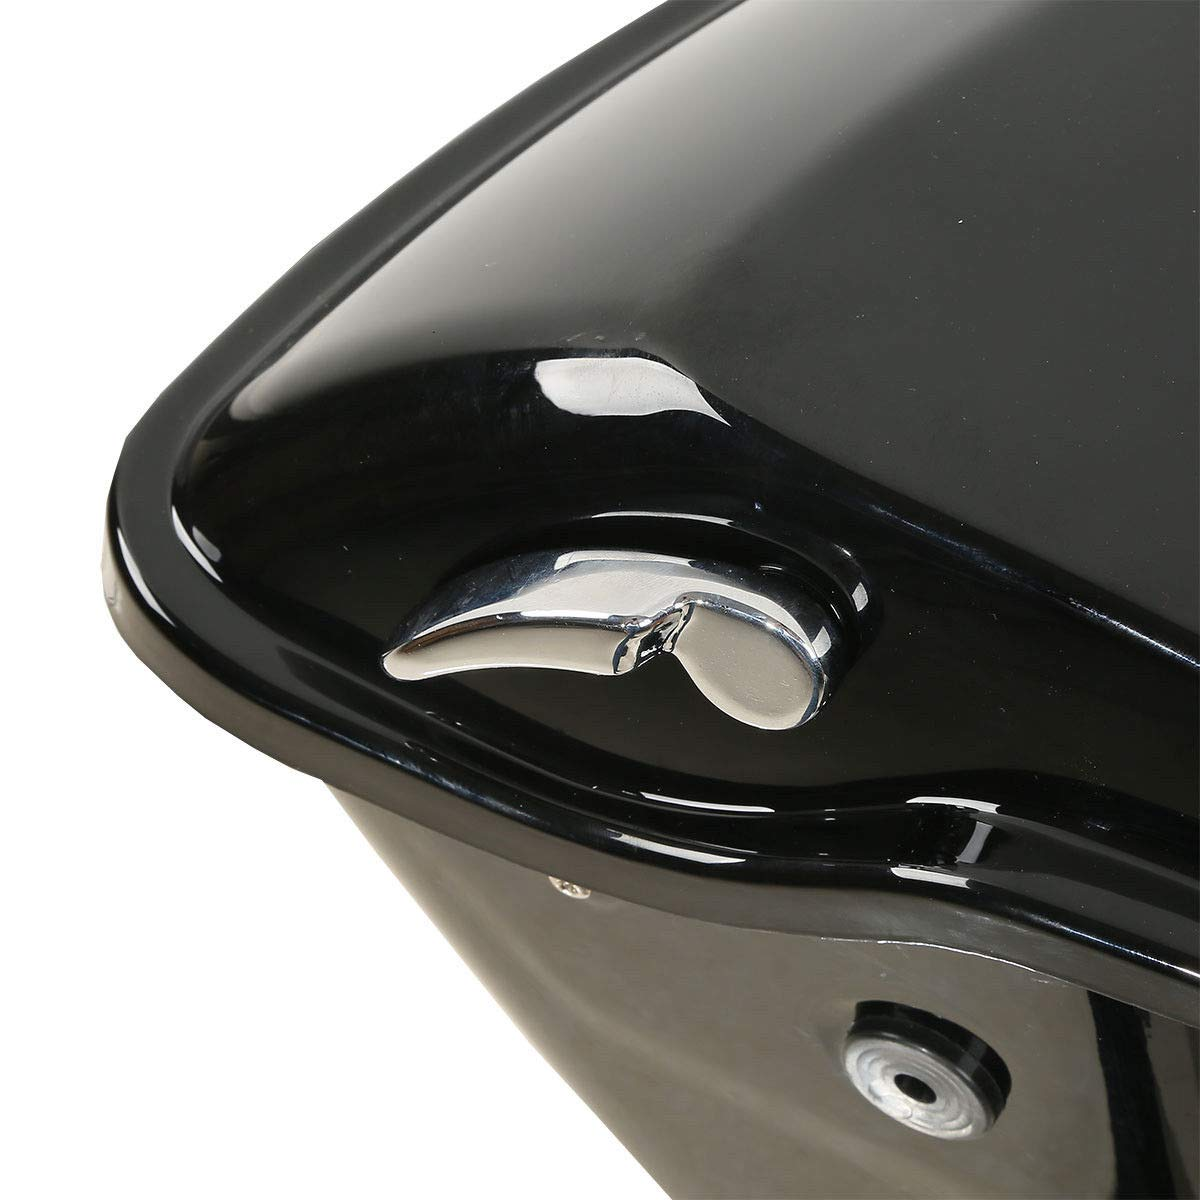 TCMT 5'' Stretched Extended Saddlebags W/Latch Key Fits For Harley Touring 2014-2019 by TCMT (Image #6)